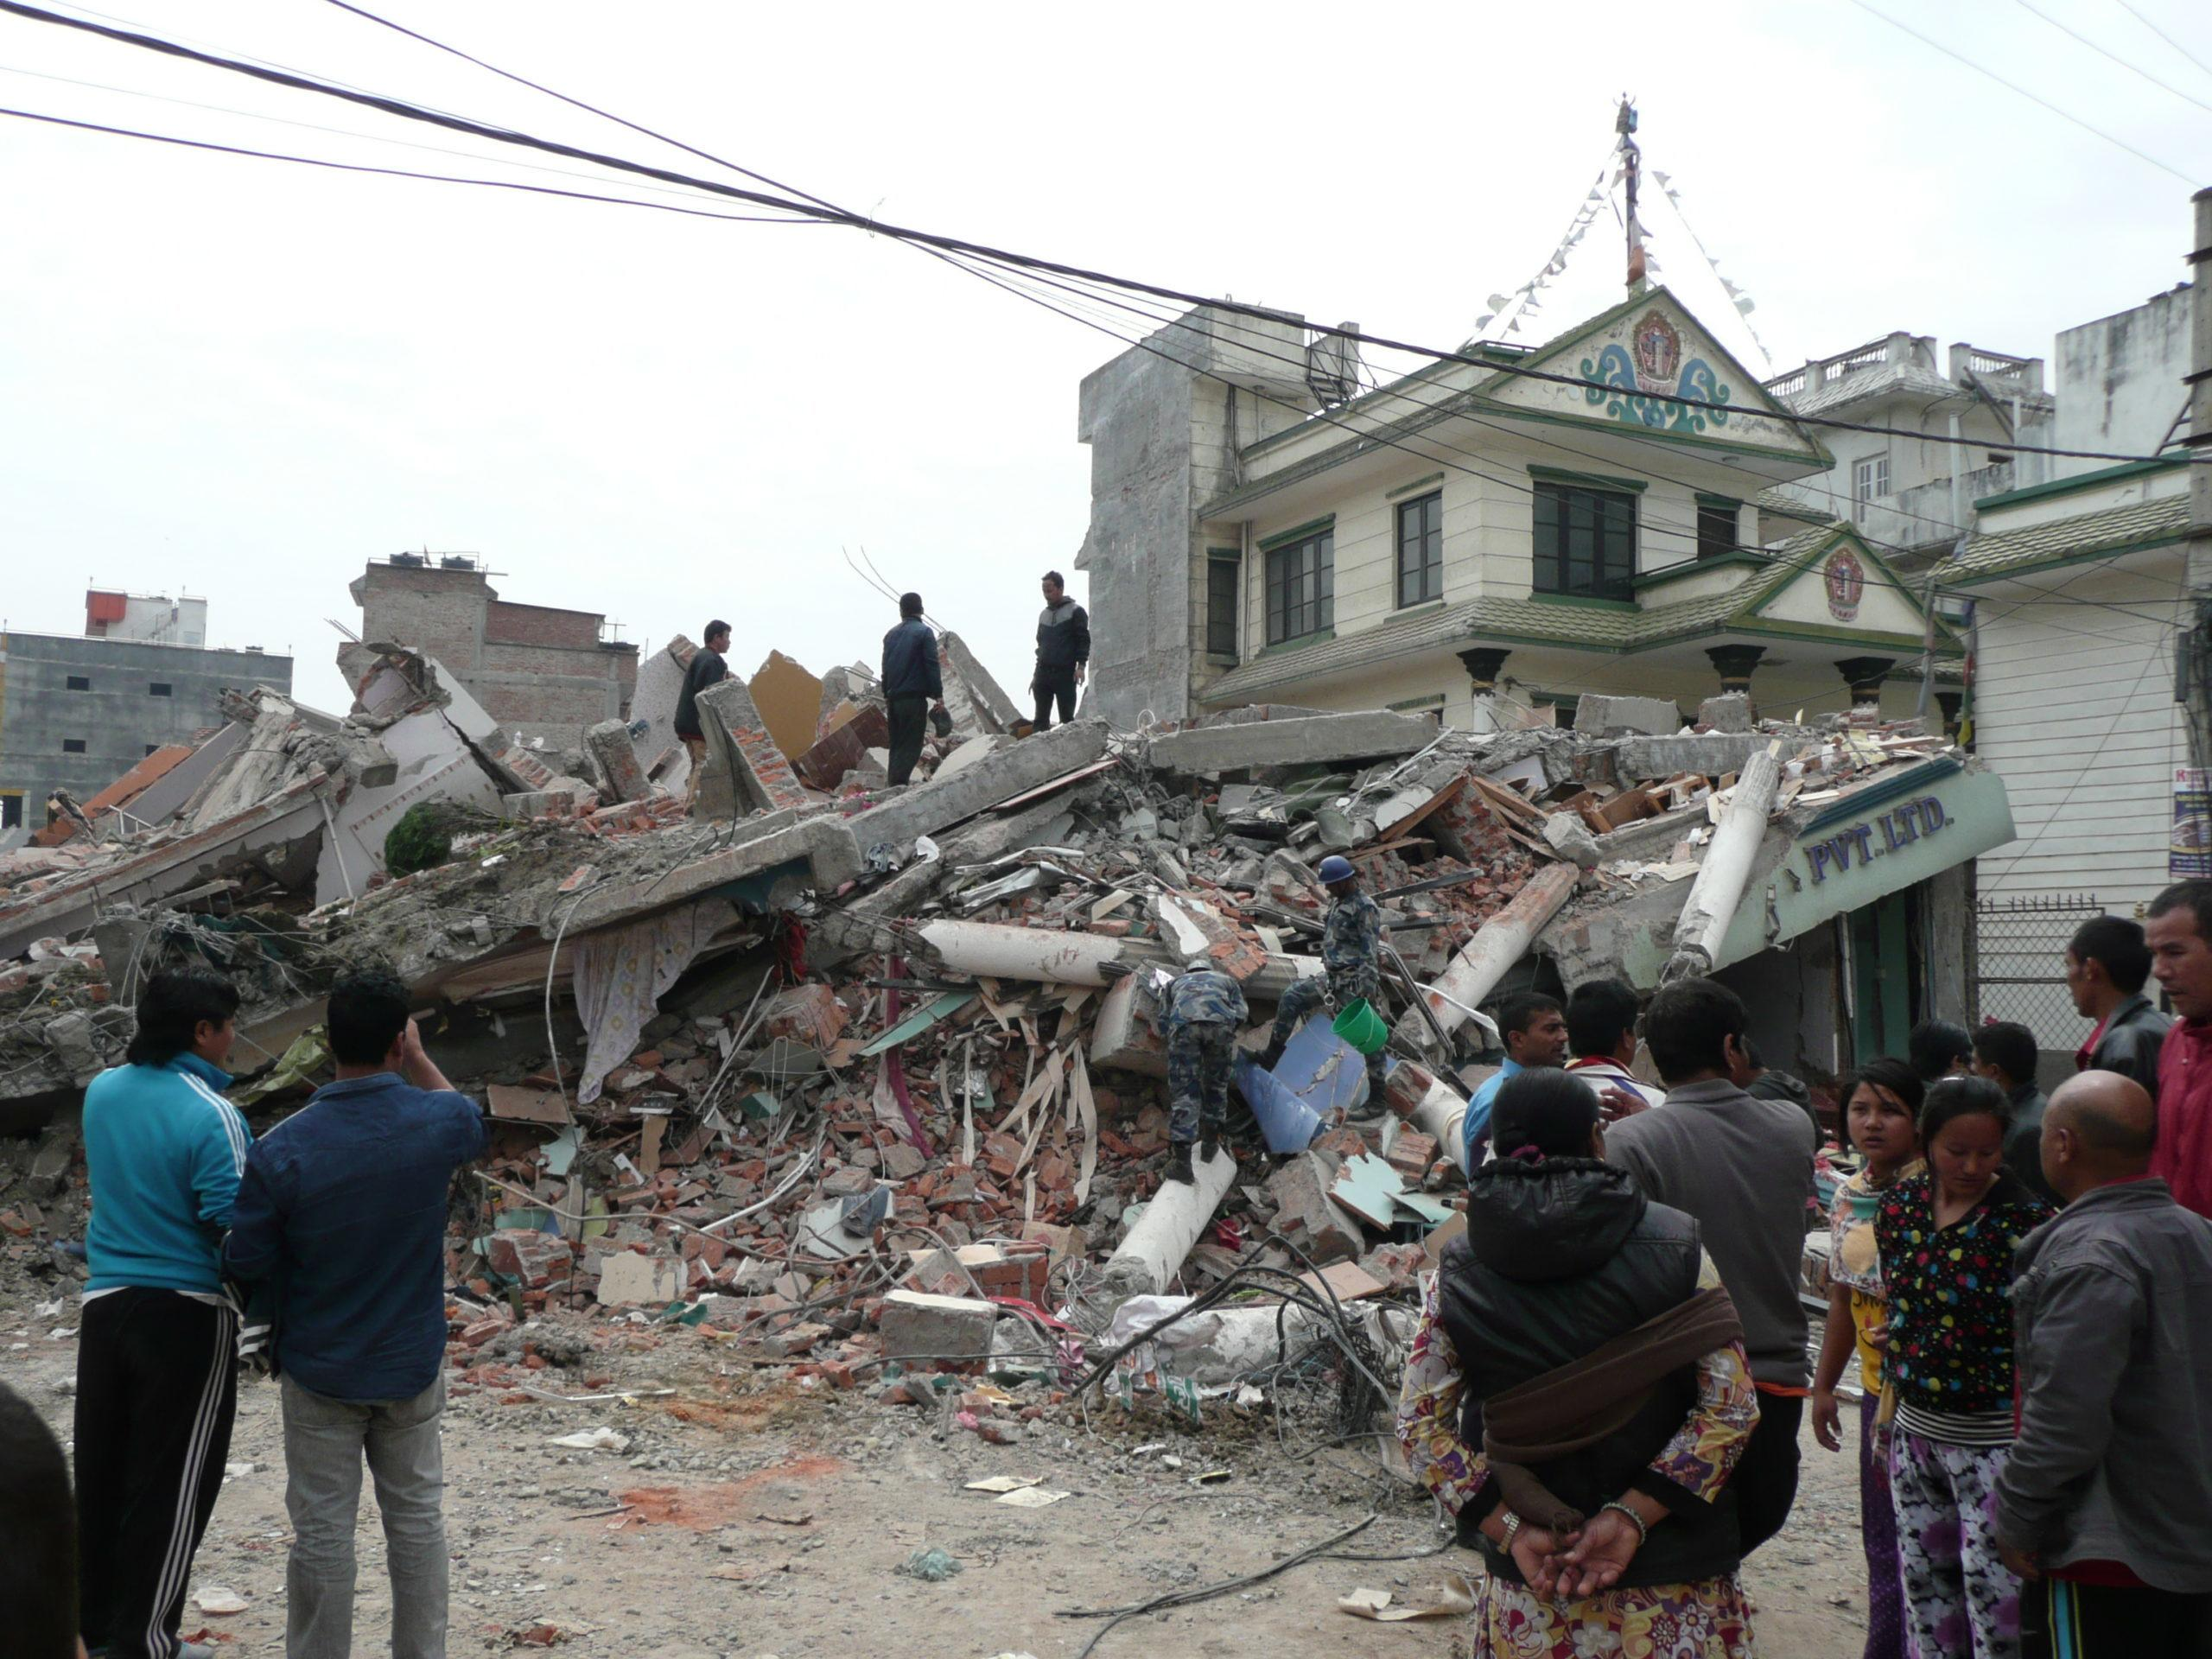 the Nepal earthquake caused this 3 storey store collapse into a heap of concrete rubble